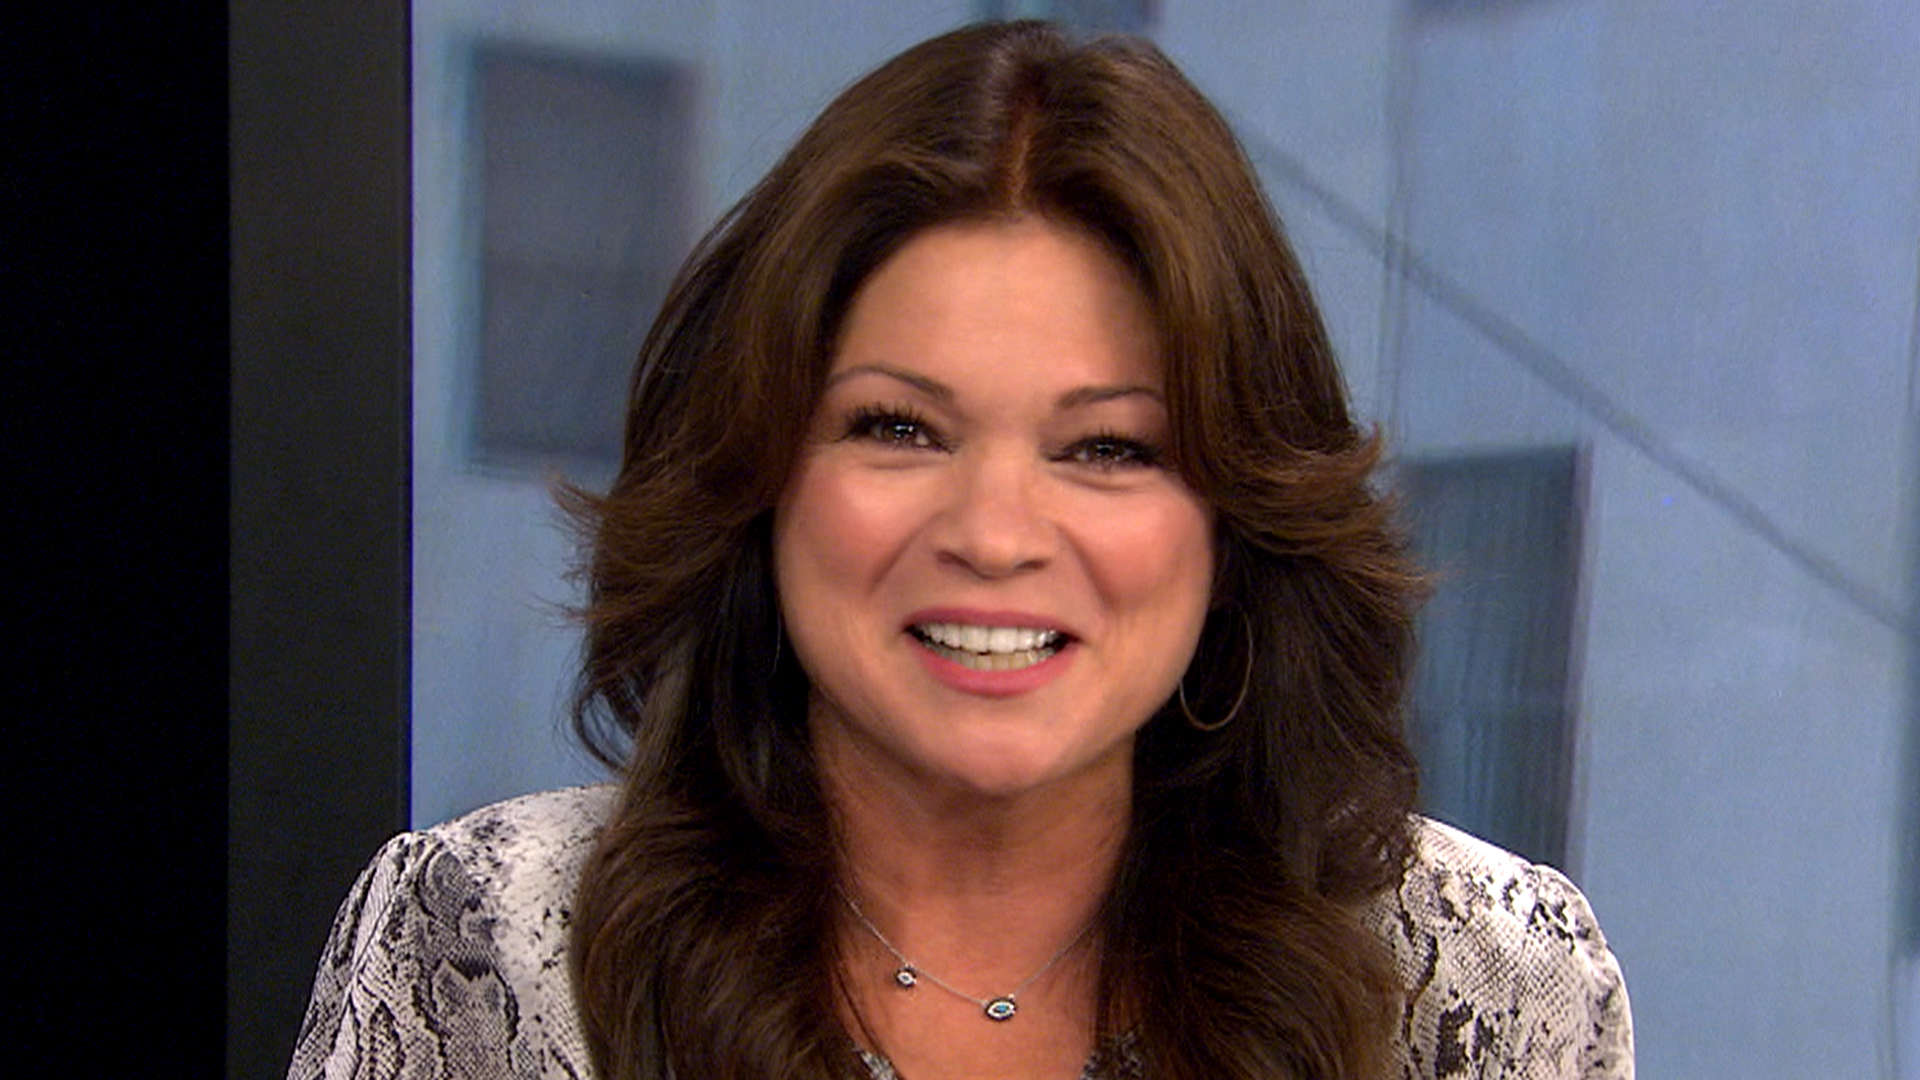 Valerie Bertinelli is a snorer